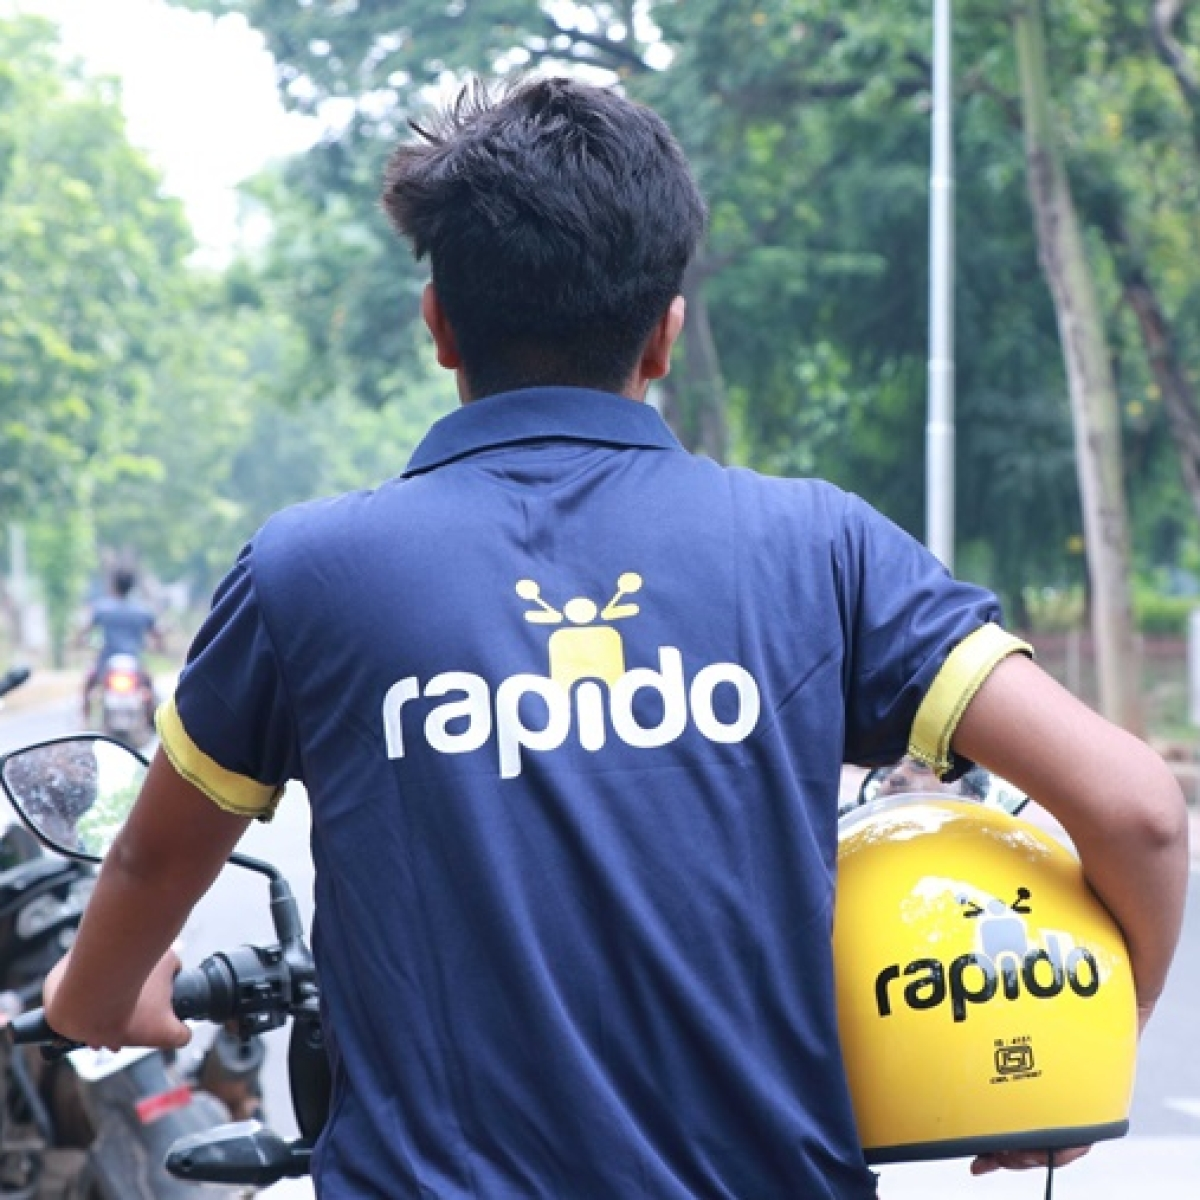 Rapido launches bike taxi service in Mumbai: Here's how you can book a ride